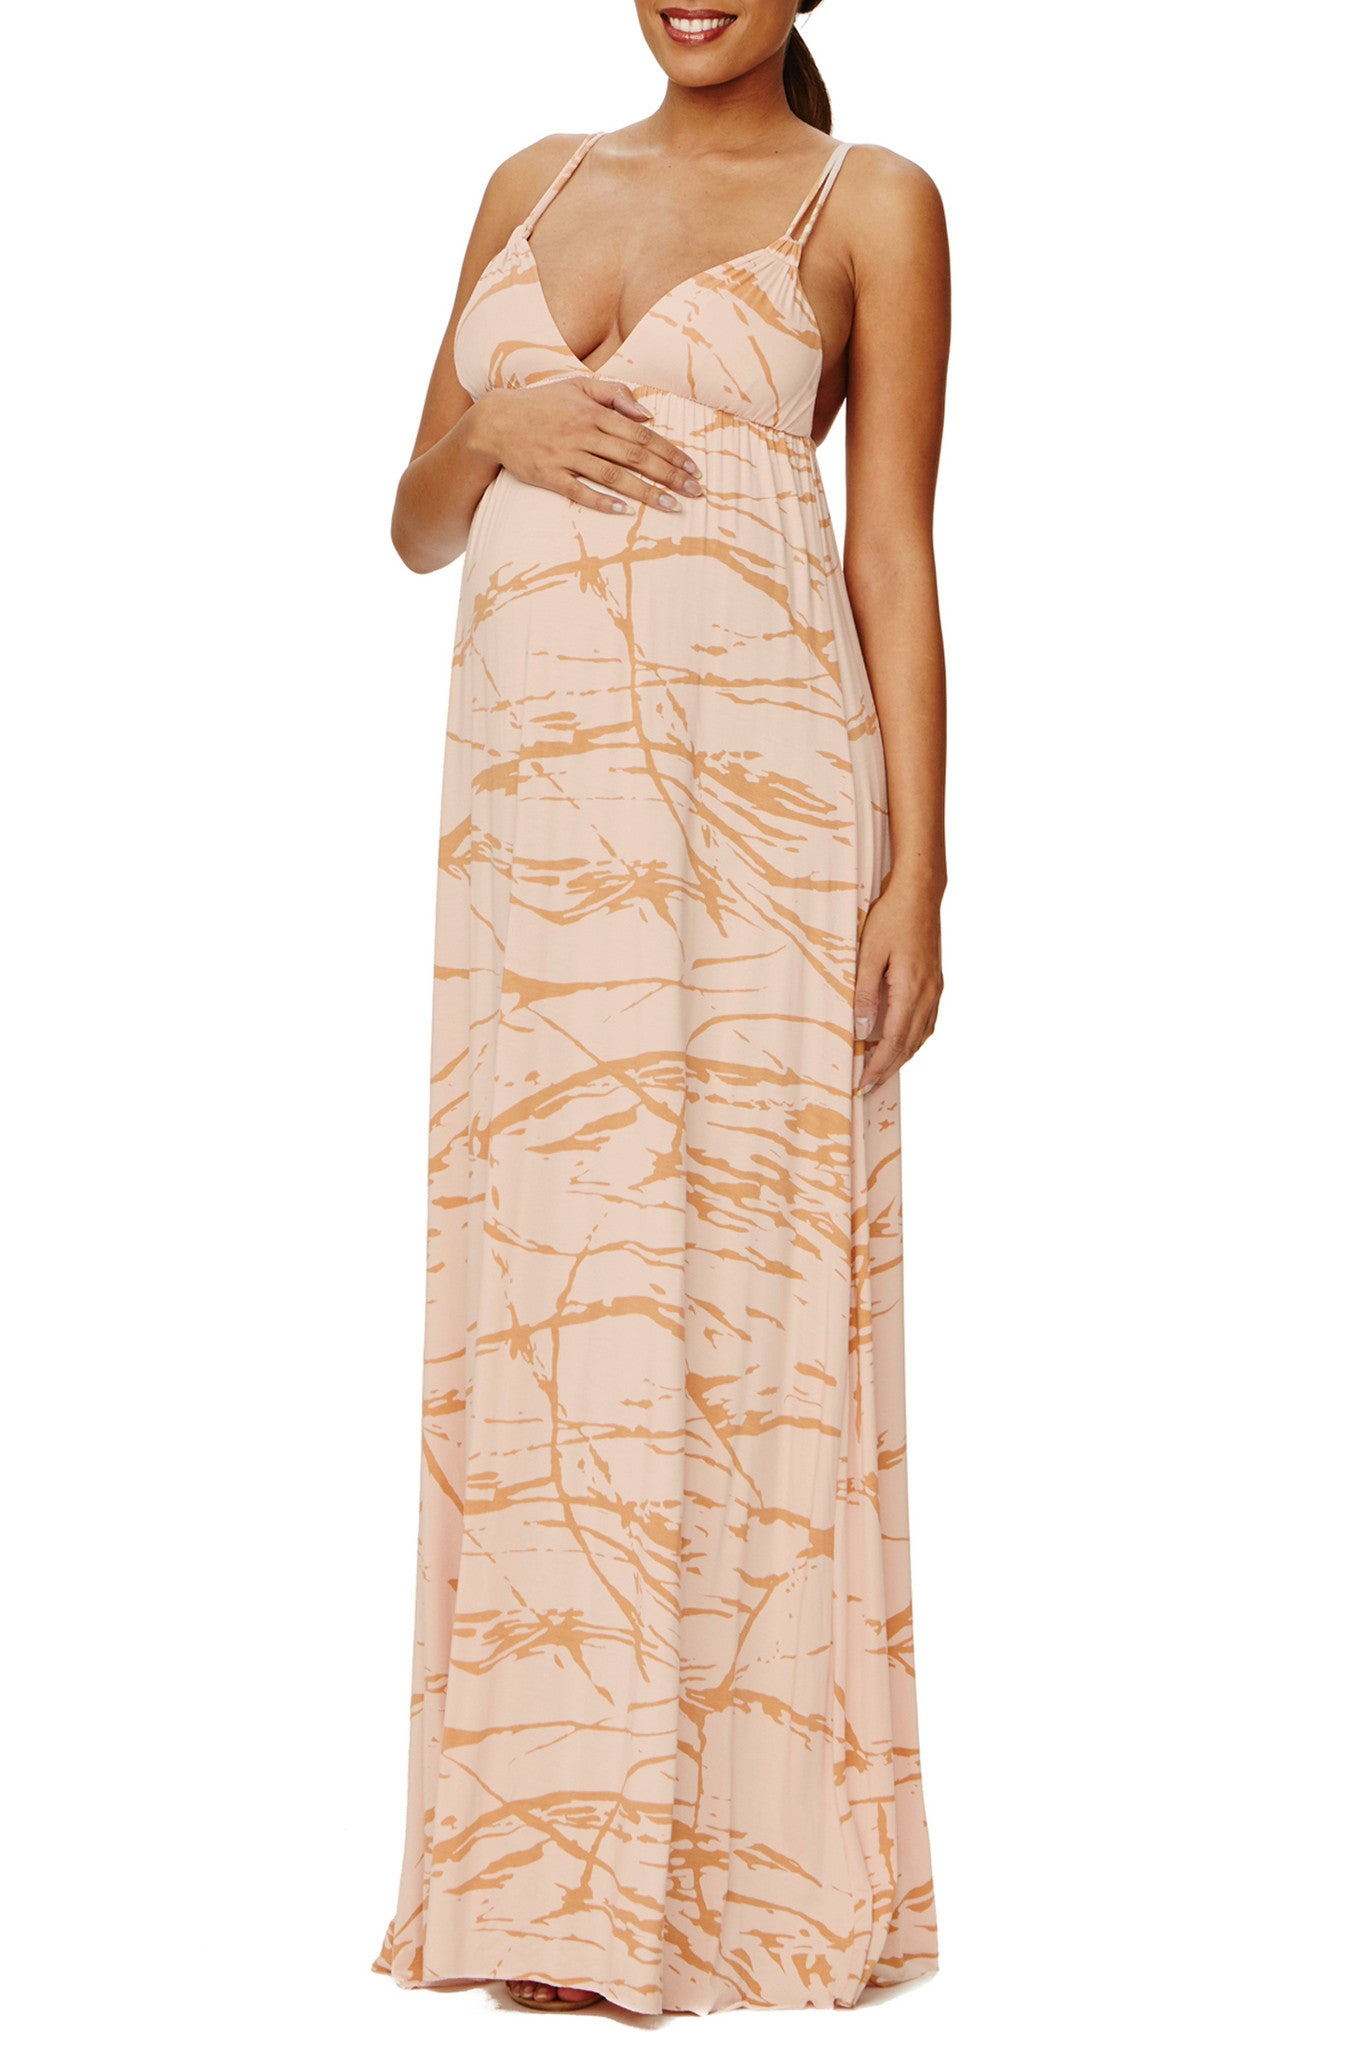 Wilde Dress Print - Champagne Reverie